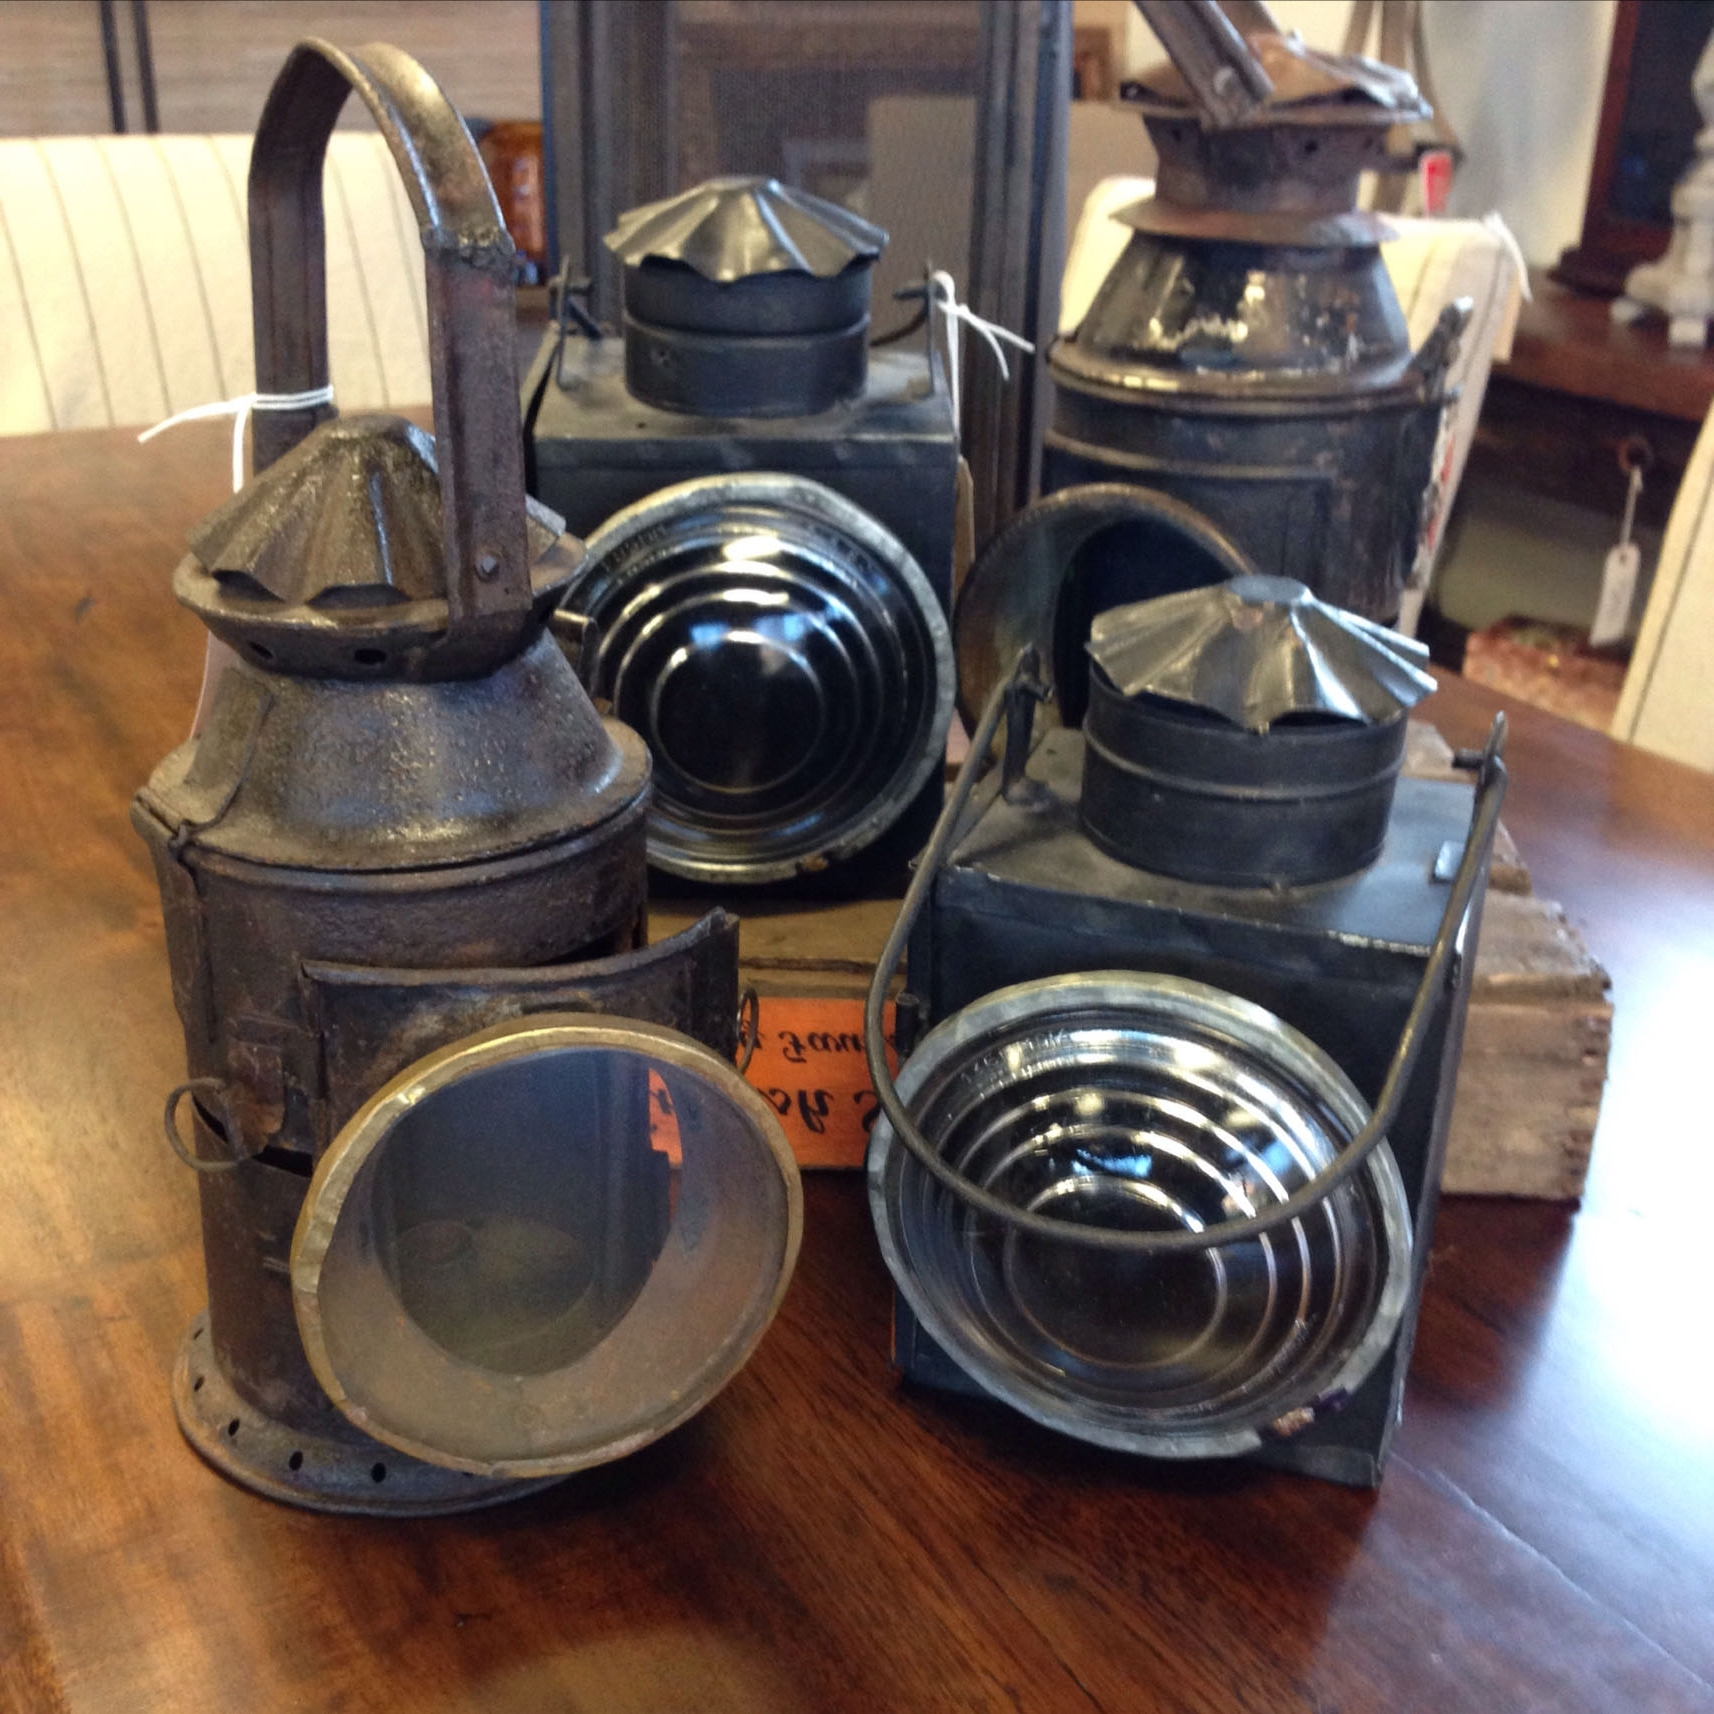 Authentic Antique Railroad Lanterns – Kudzu Antiques Inside Well Liked Outdoor Railroad Lanterns (Gallery 6 of 20)